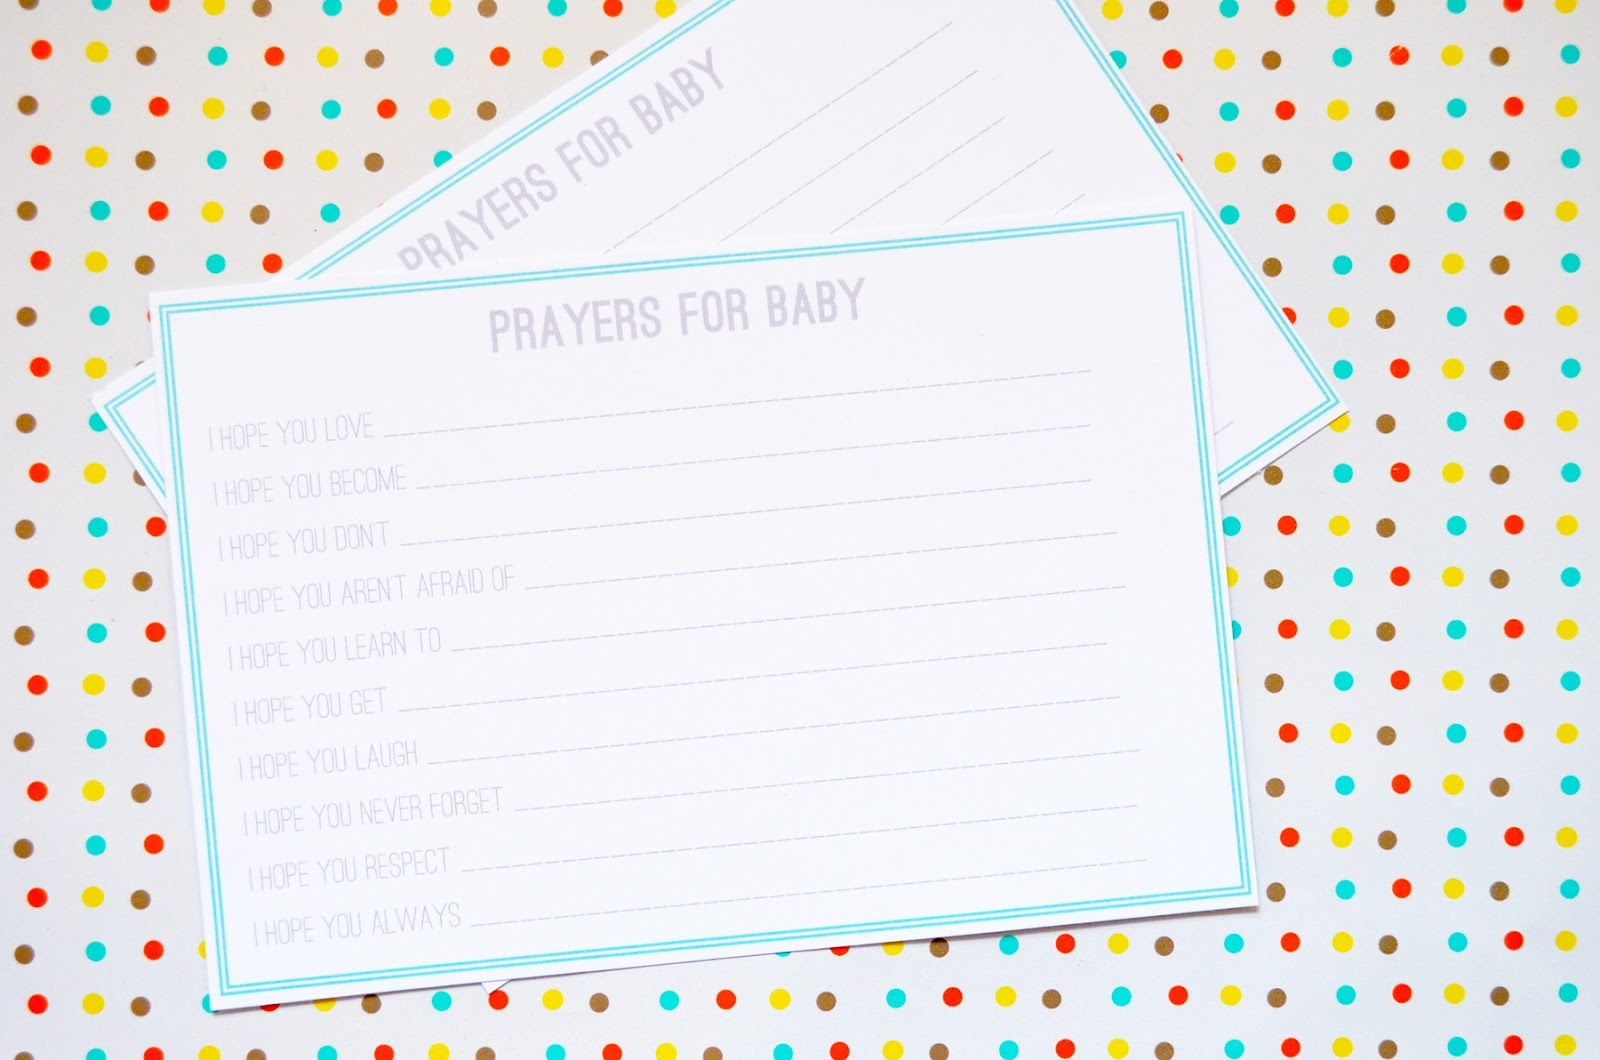 secondhand with style baby shower printable prayer cards